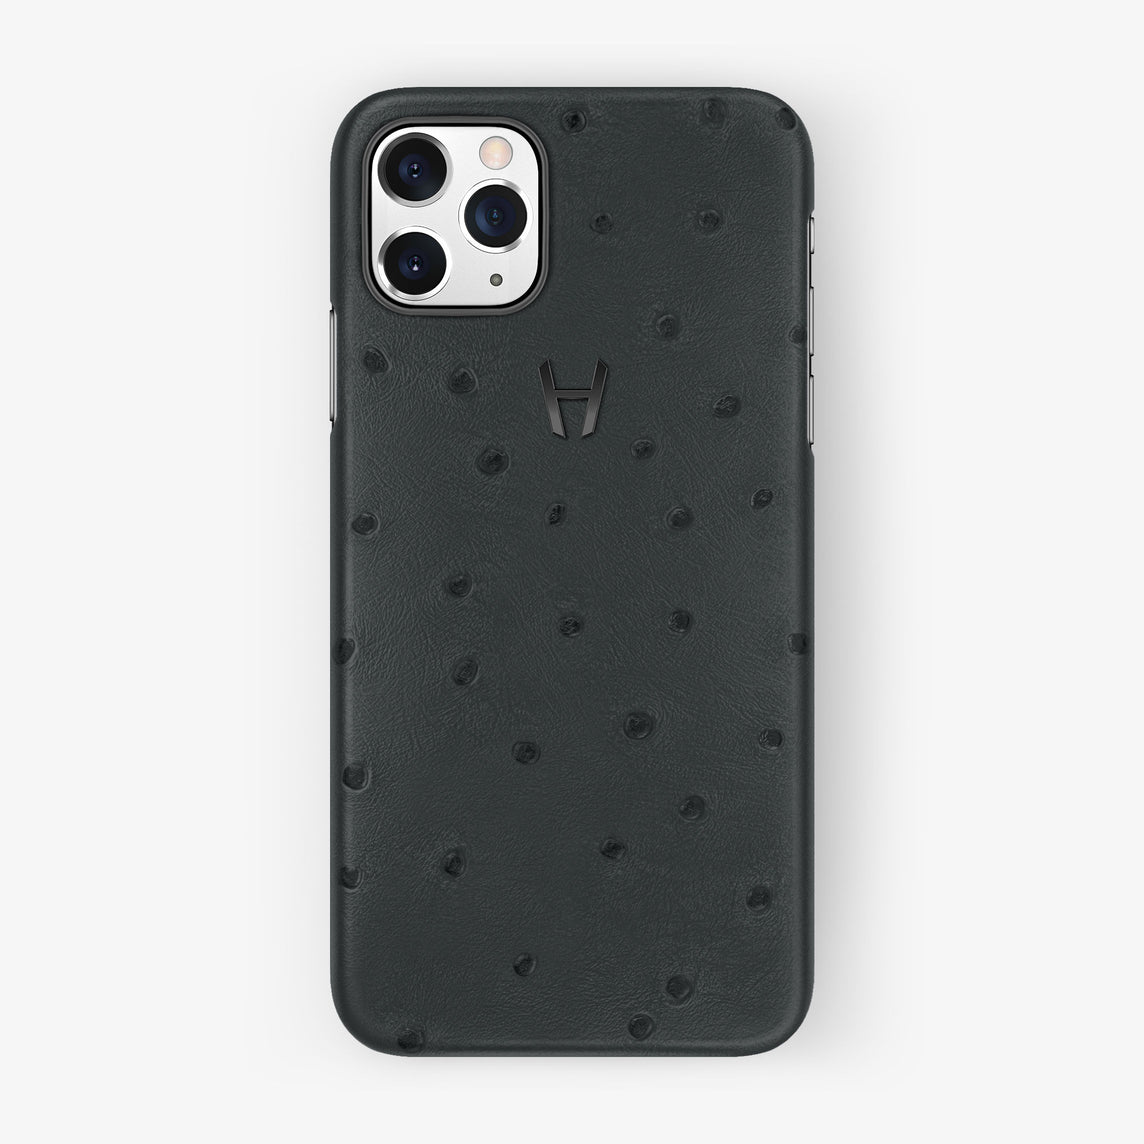 Ostrich Case iPhone 11 Pro | Anthracite Grey - Black